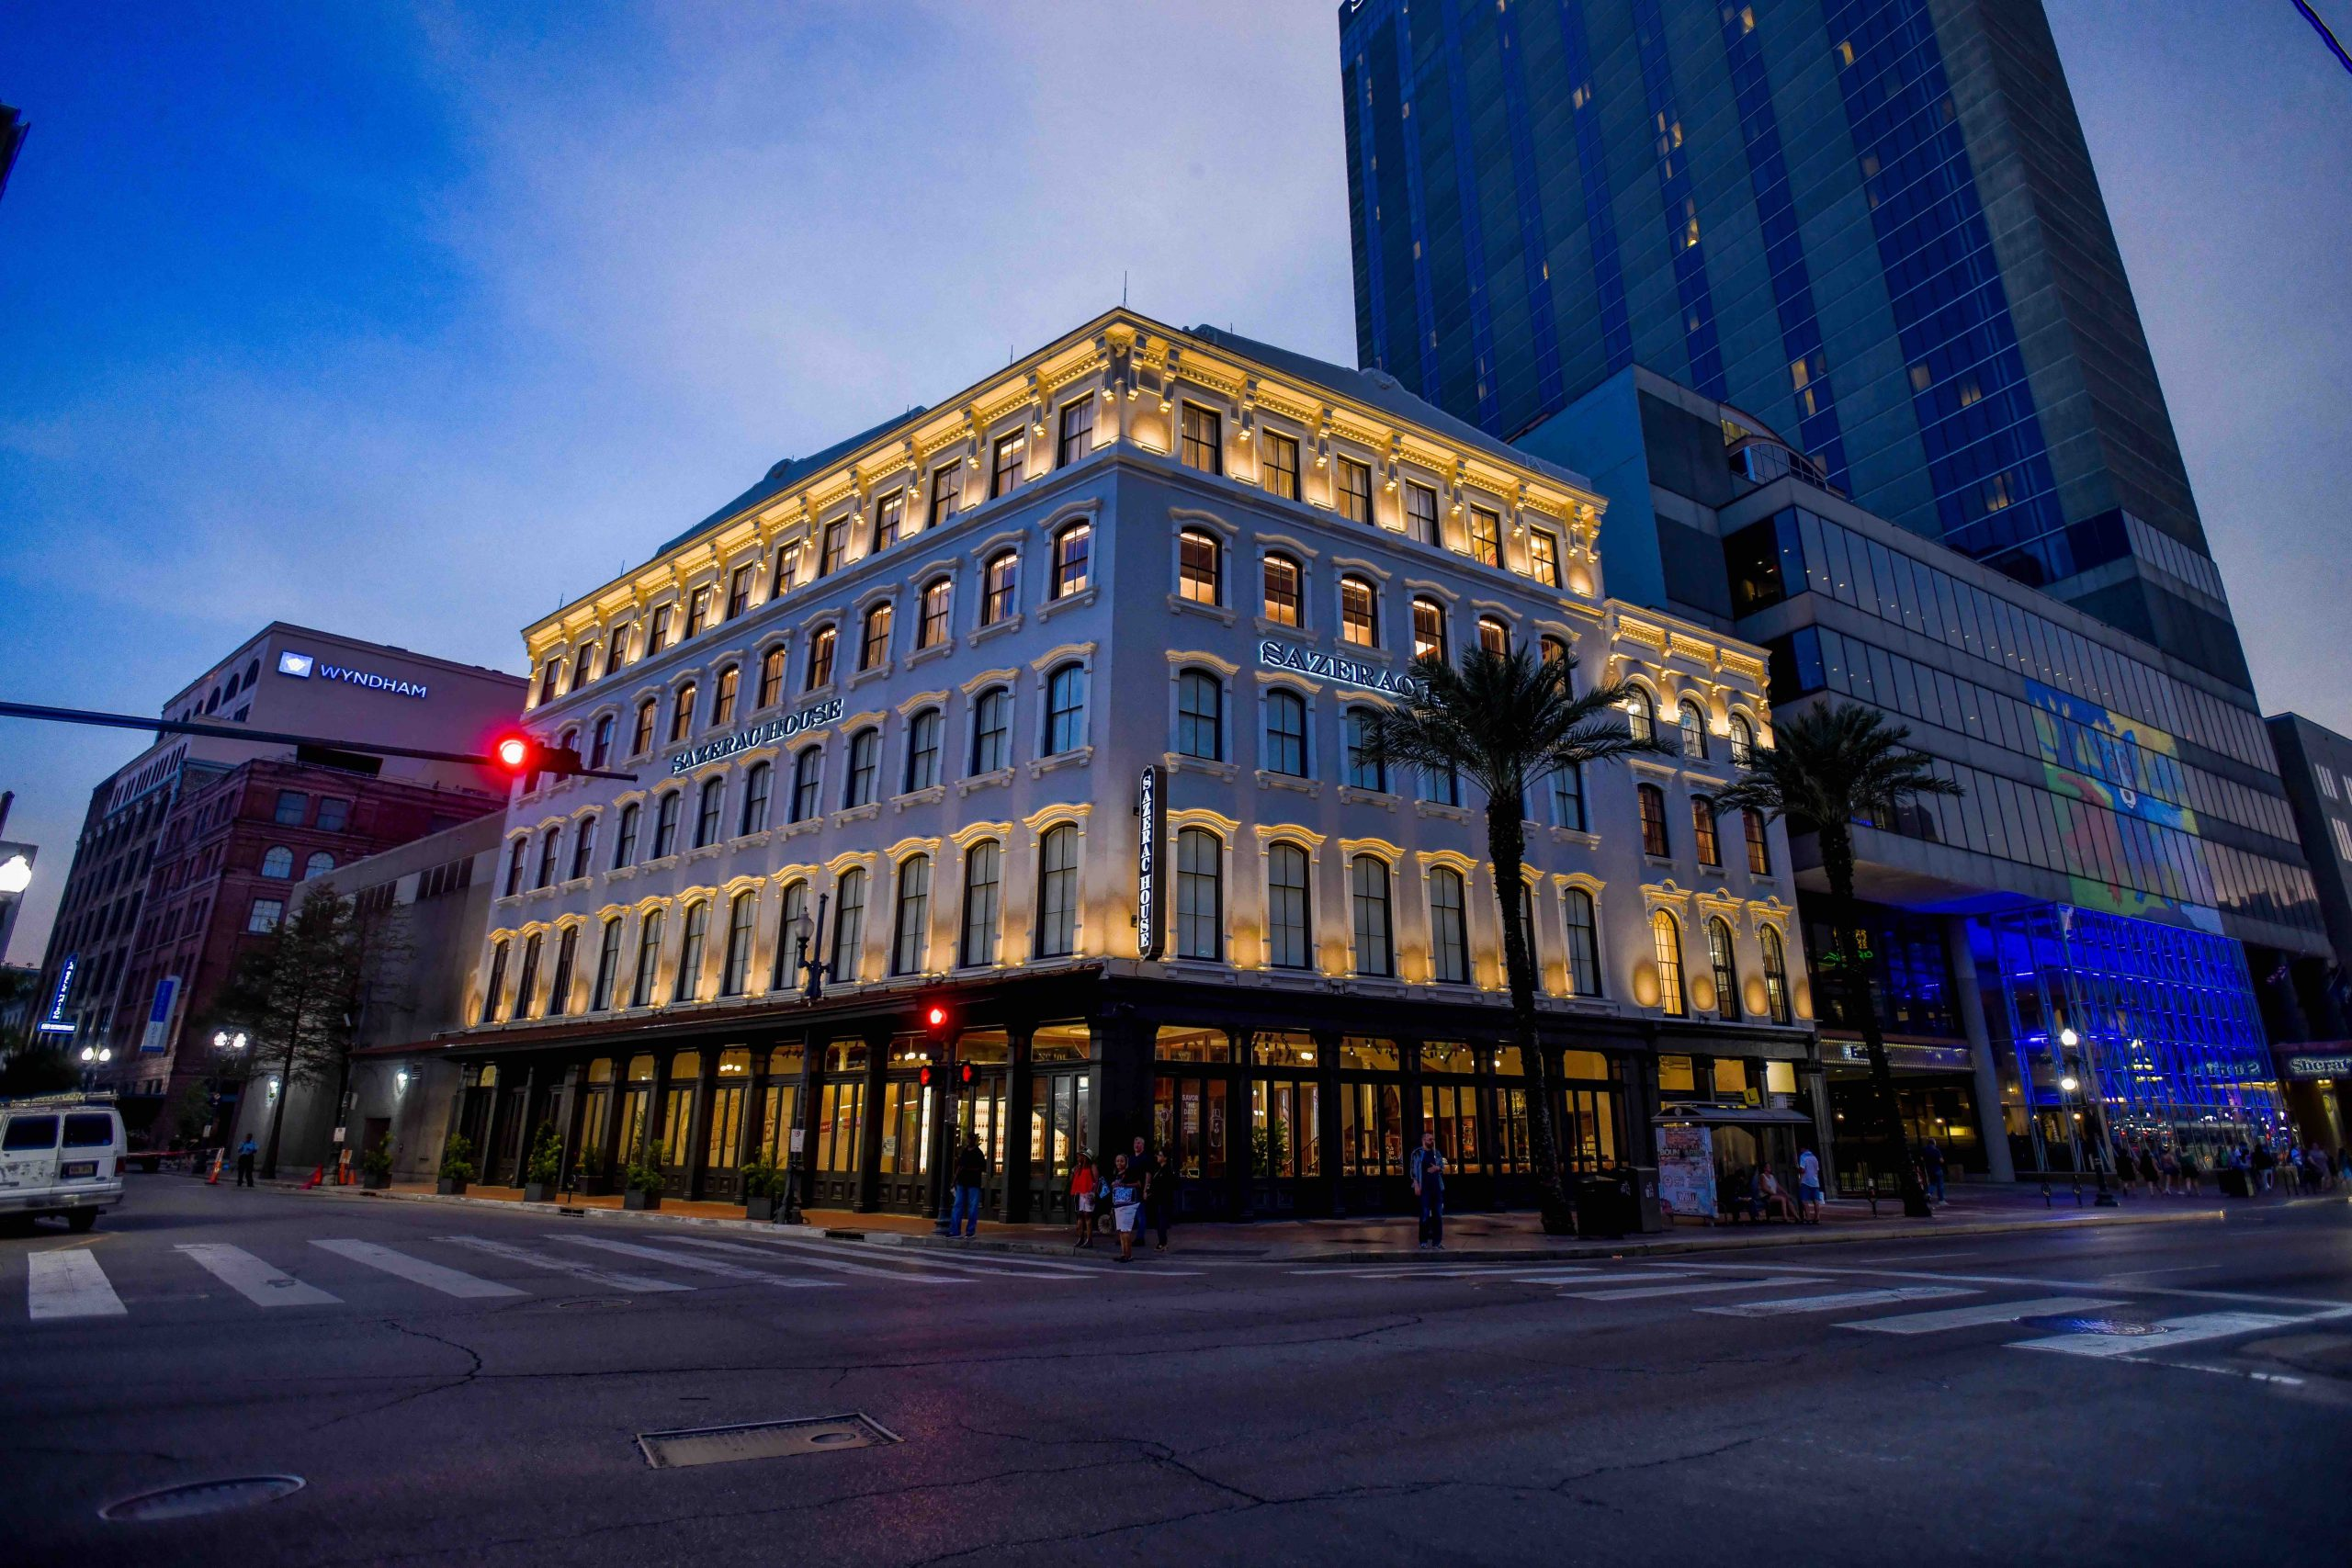 We Help Sazerac House Upgrade Existing Glass With 3M Window Film - Commercial Safety and Security Window Film in New Orleans, Louisiana 2